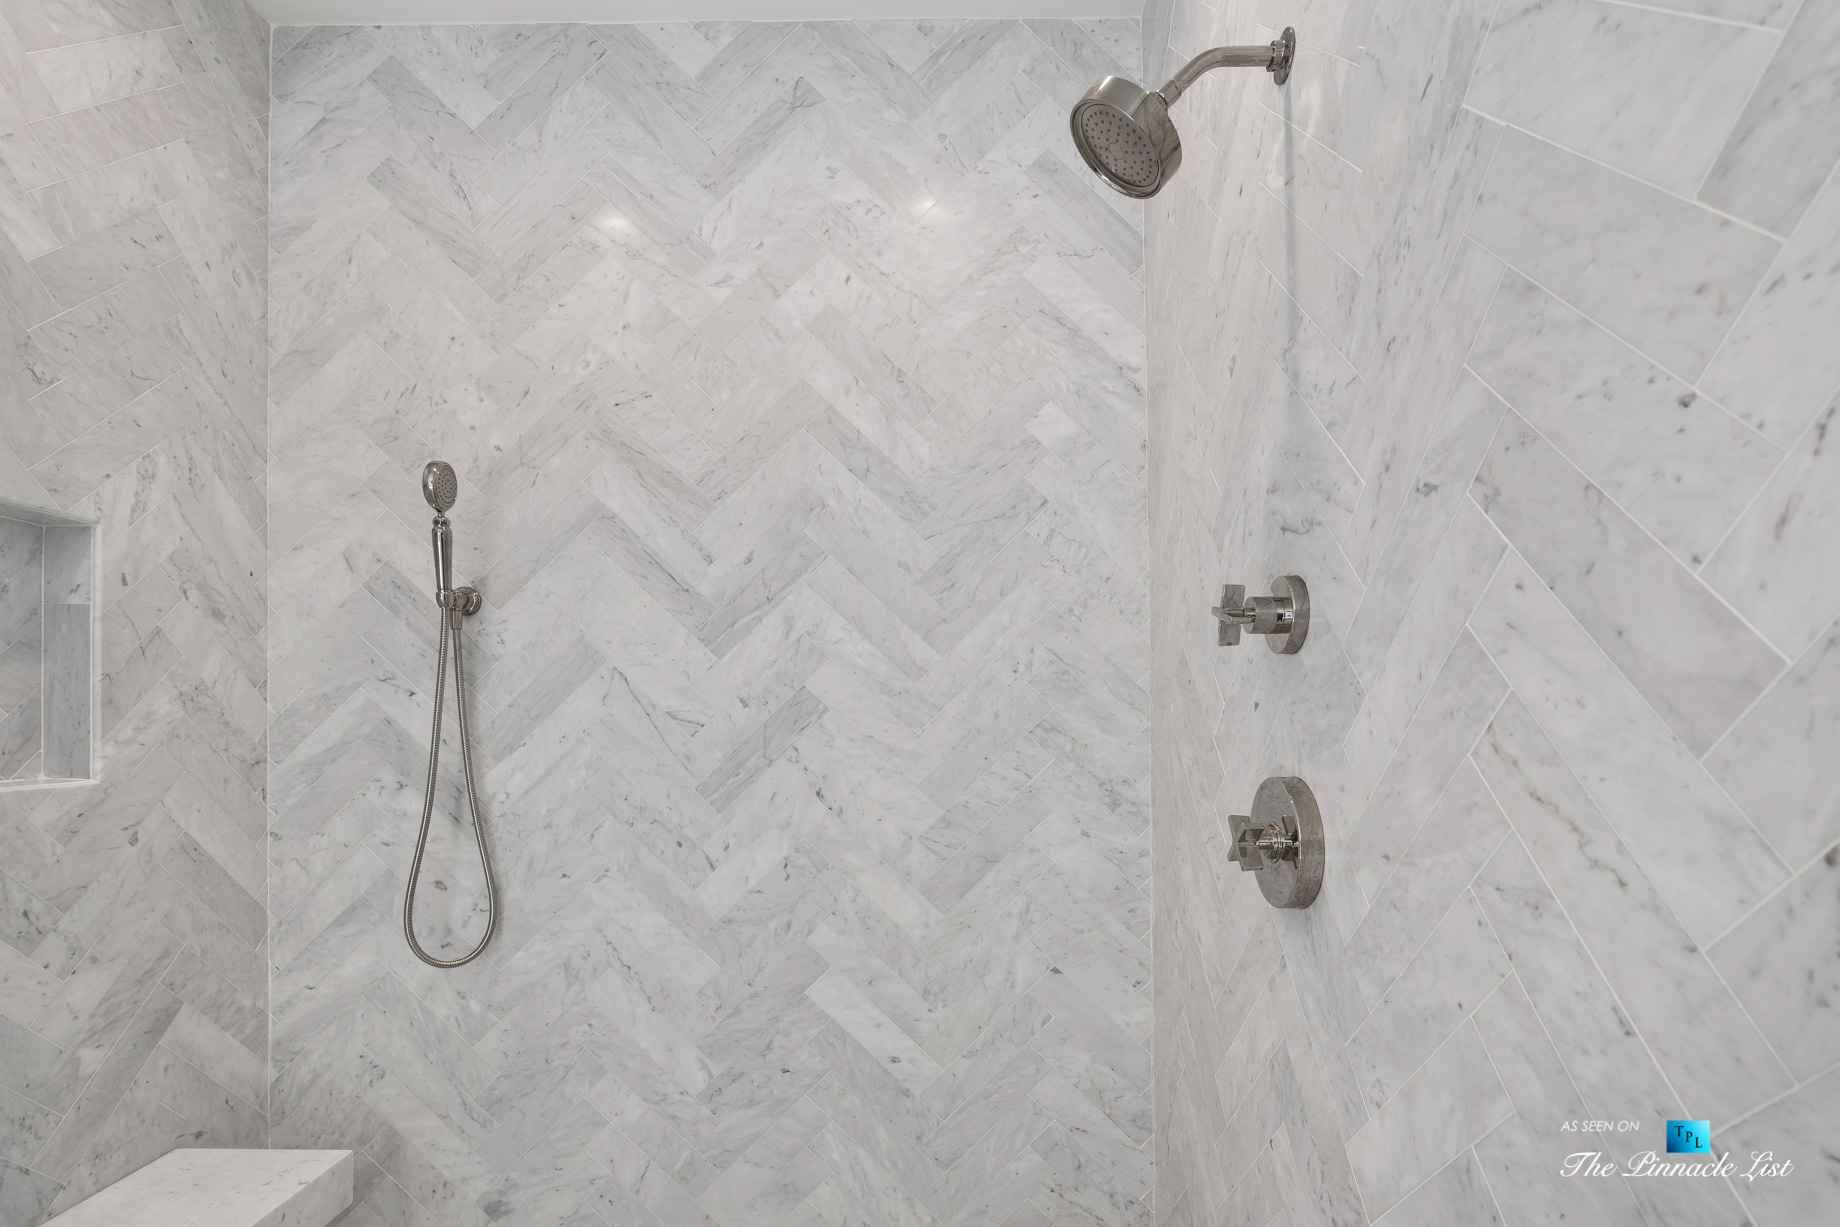 447 Valley Rd NW, Atlanta, GA, USA - Master Bathroom Shower - Luxury Real Estate - Tuxedo Park Home